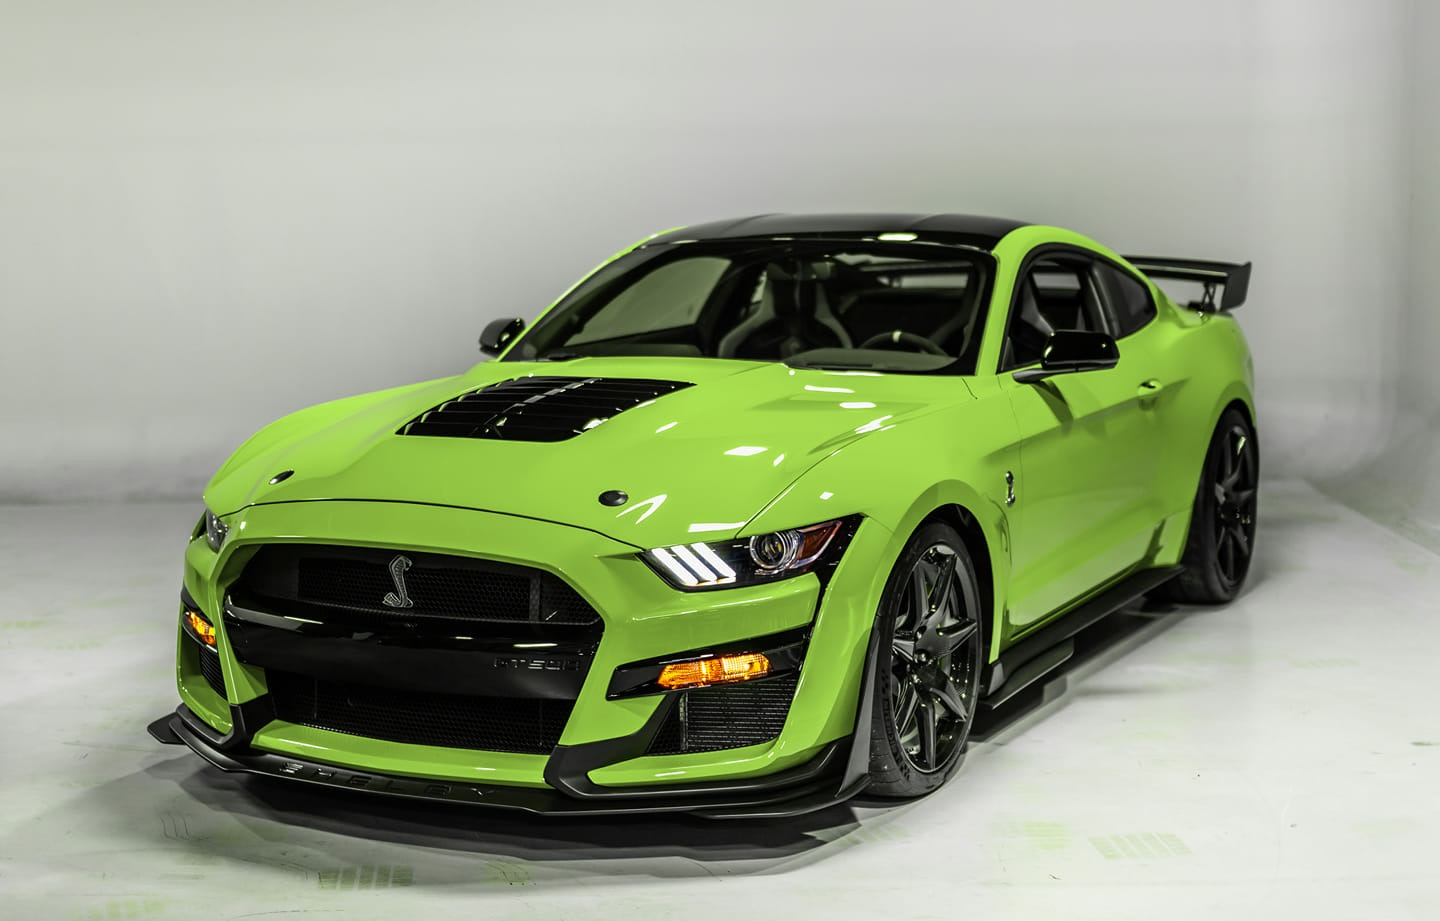 2018 Mustang Colors >> Grabber Lime GT500 pictures | 2015+ S550 Mustang Forum (GT ...